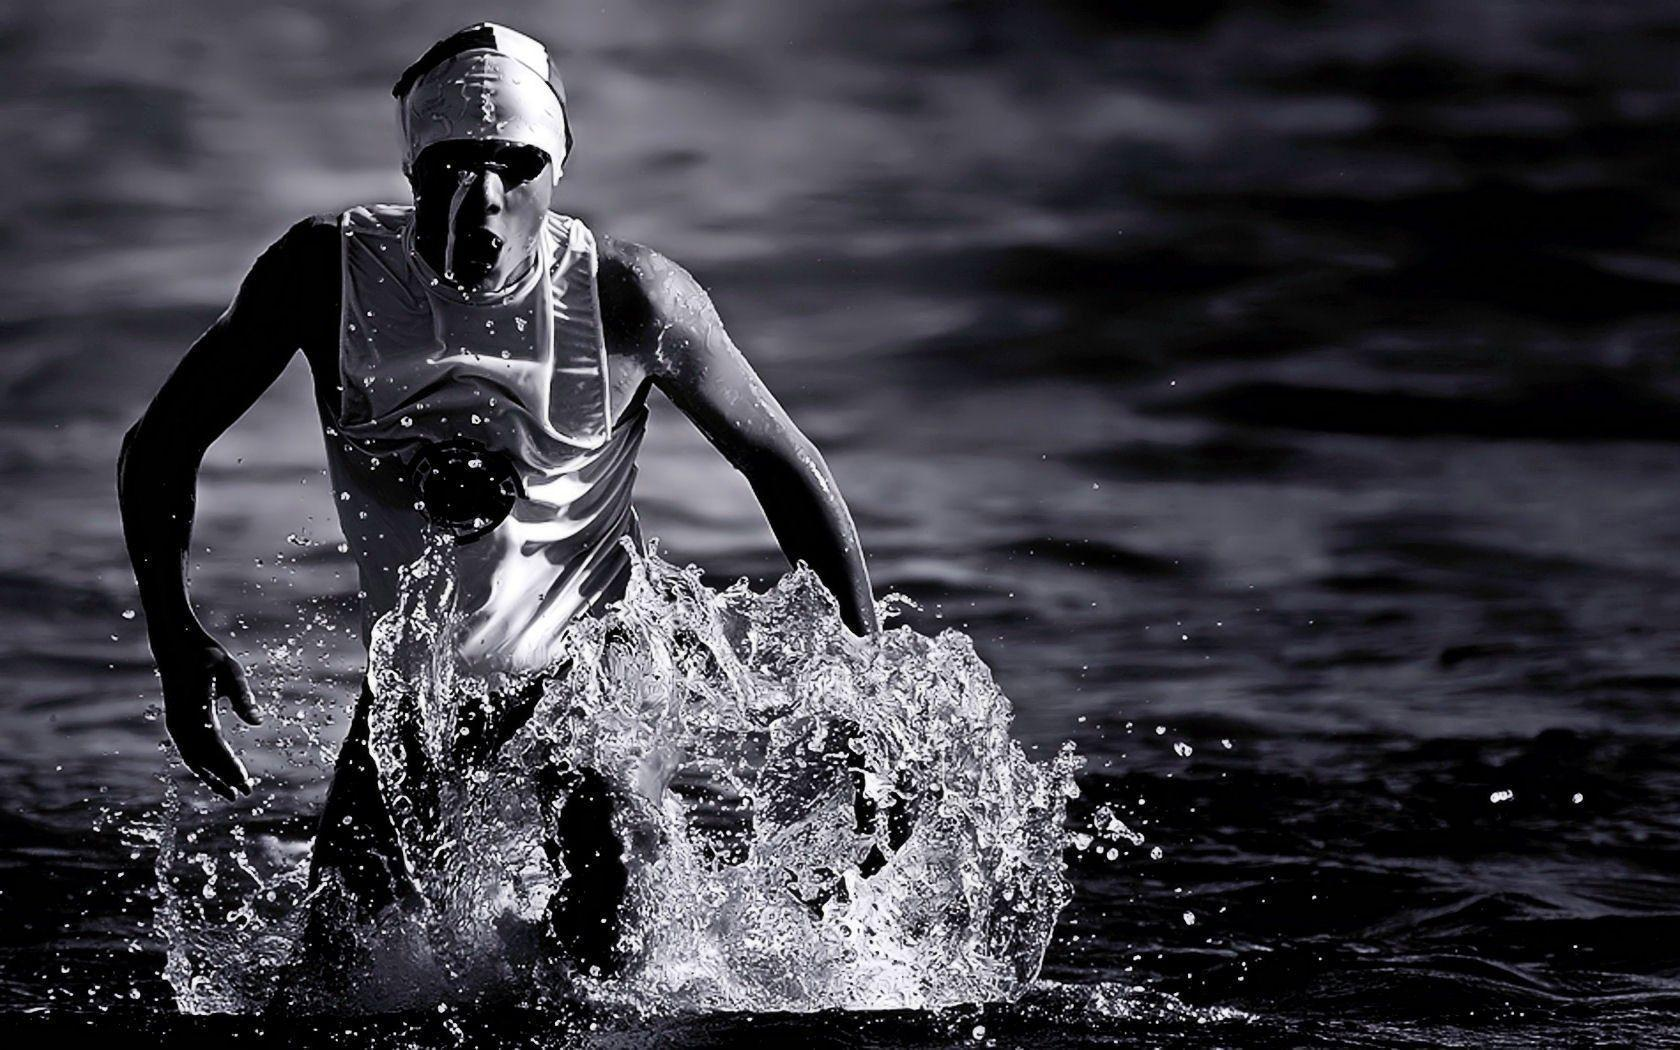 Wallpapers For > Triathlon Wallpapers Widescreen